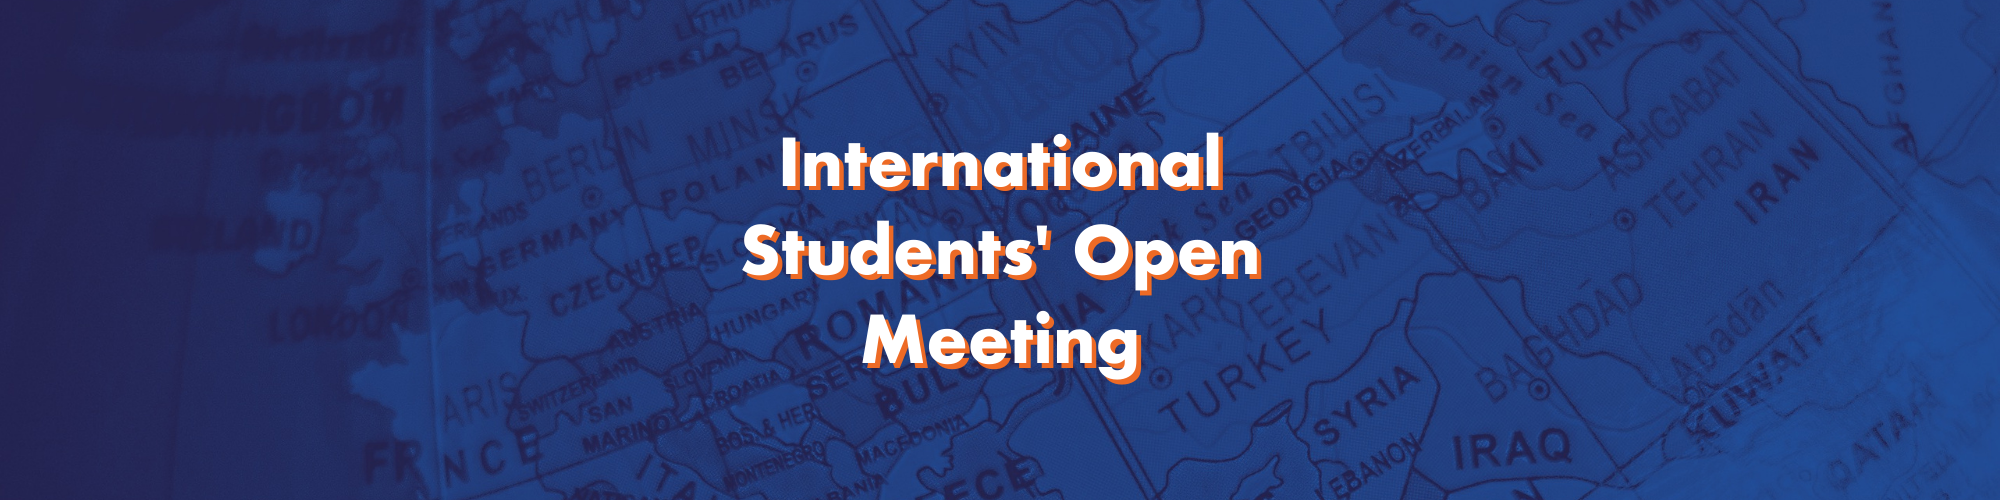 International Students' Open Meeting with the Sabbatical Officers